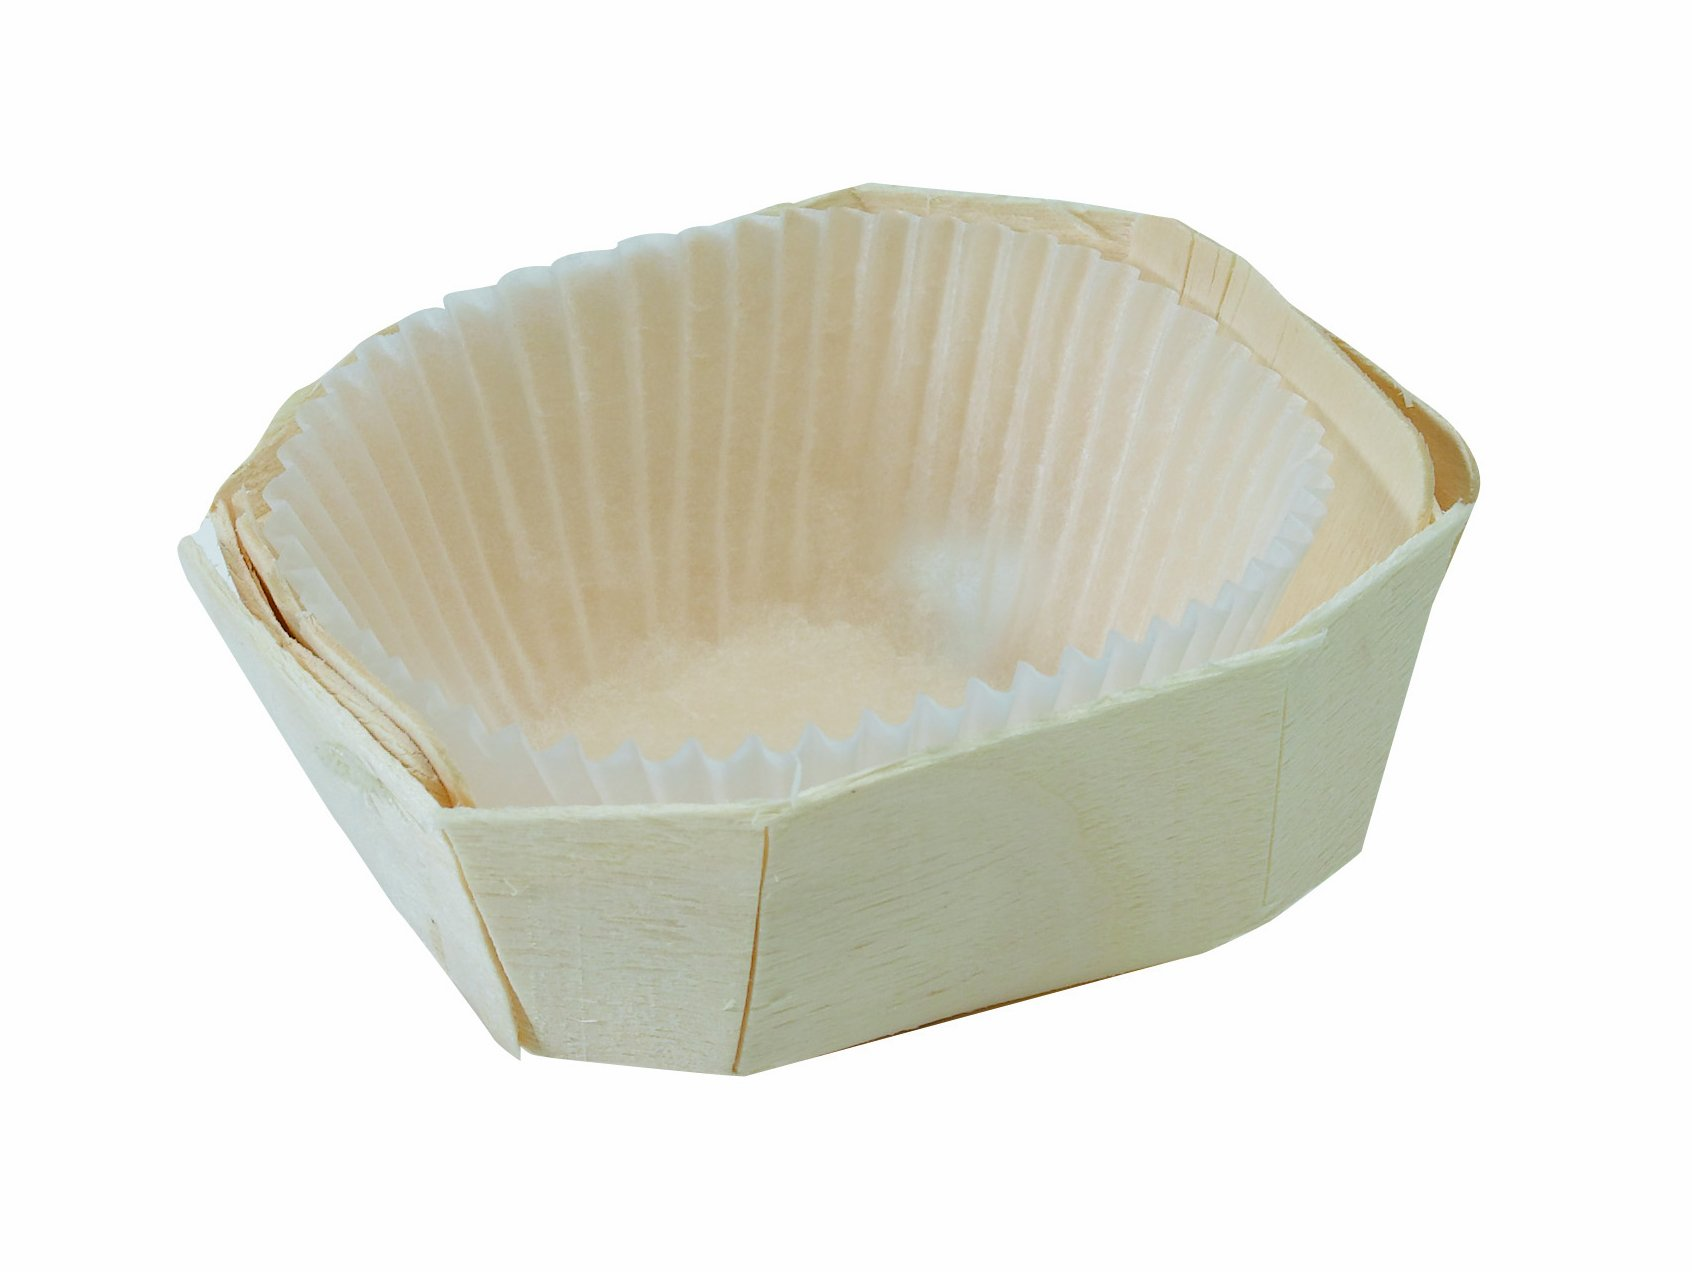 PacknWood Wooden Baking Mold, Baking Liner Included, 2 oz. Capacity (Case of 500)